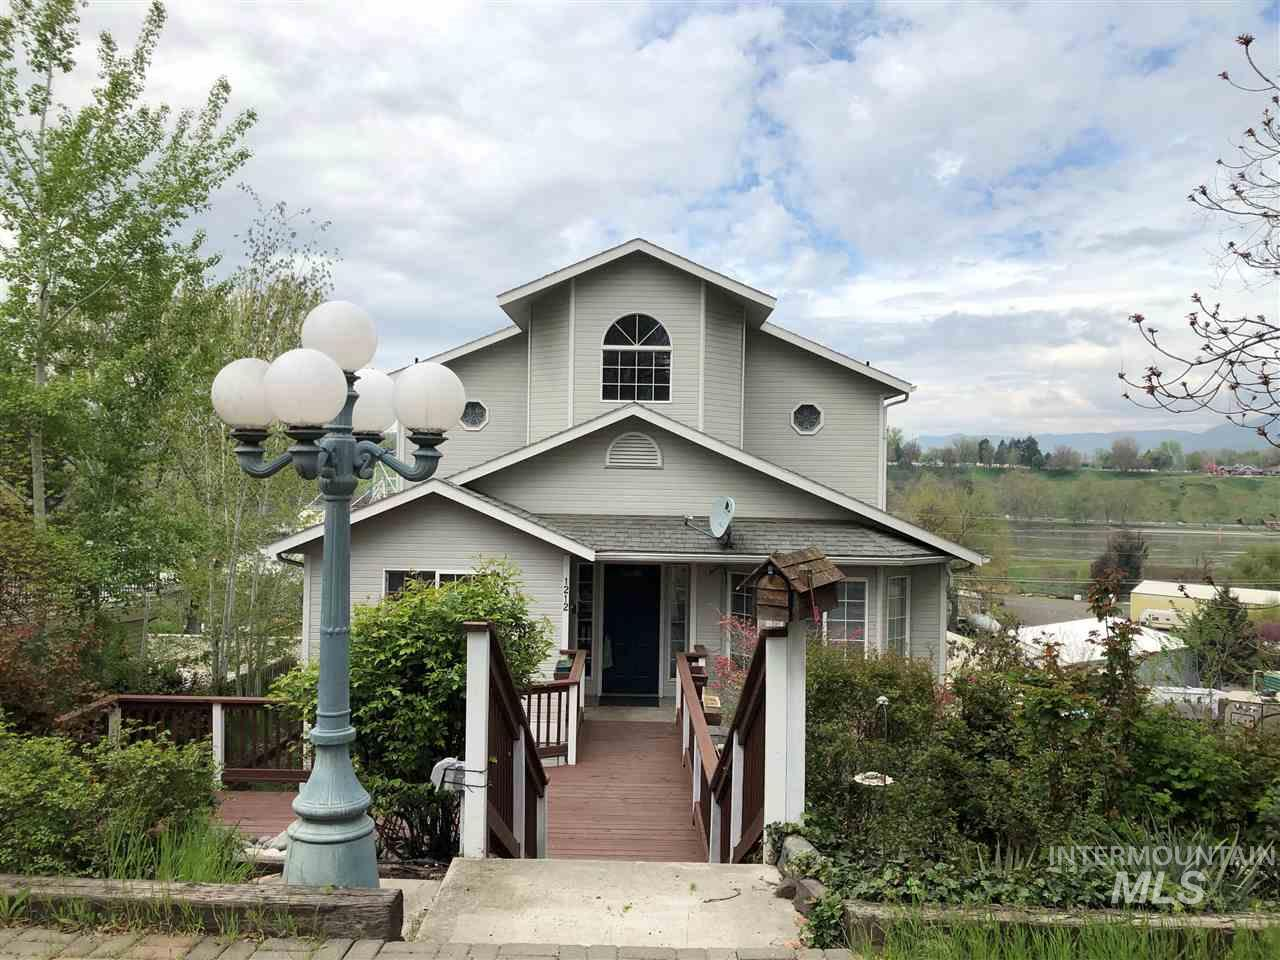 1212 Prospect, Lewiston, Idaho 83501, 4 Bedrooms, 3 Bathrooms, Residential For Sale, Price $299,900, 314736